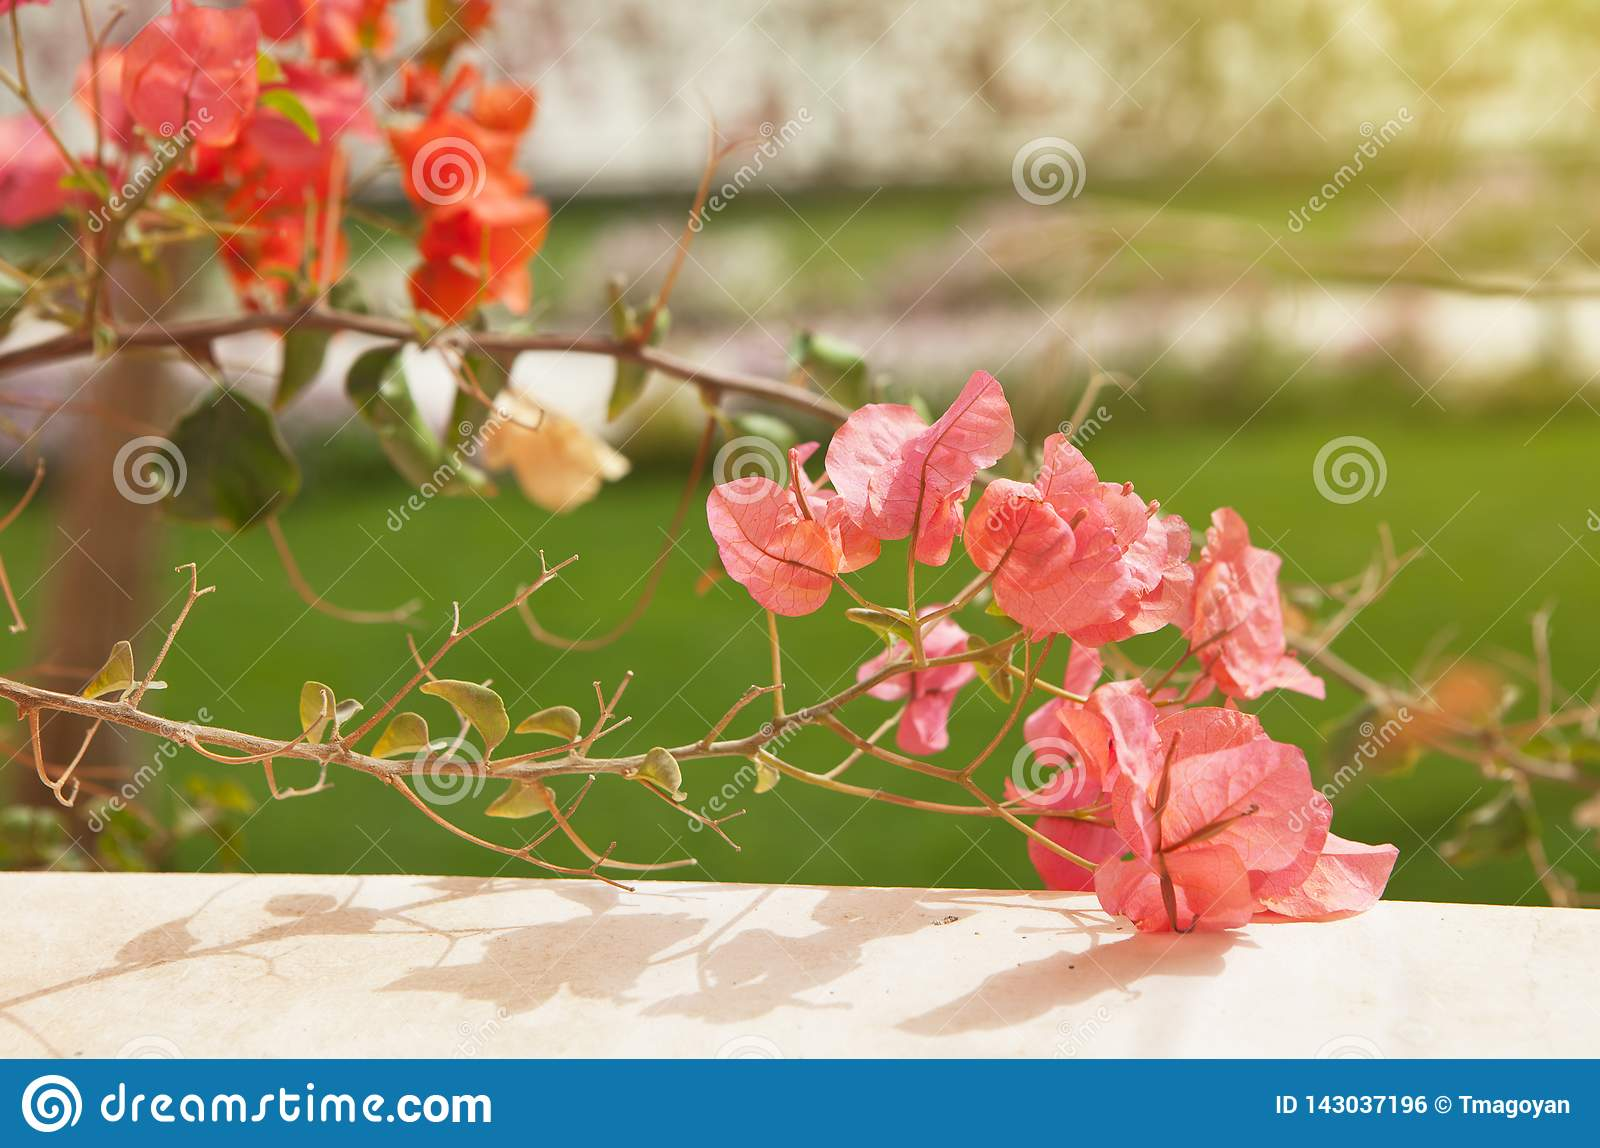 Pink and coral Bougainvillea flowers on green grass background blurry. Travel and vacation concept